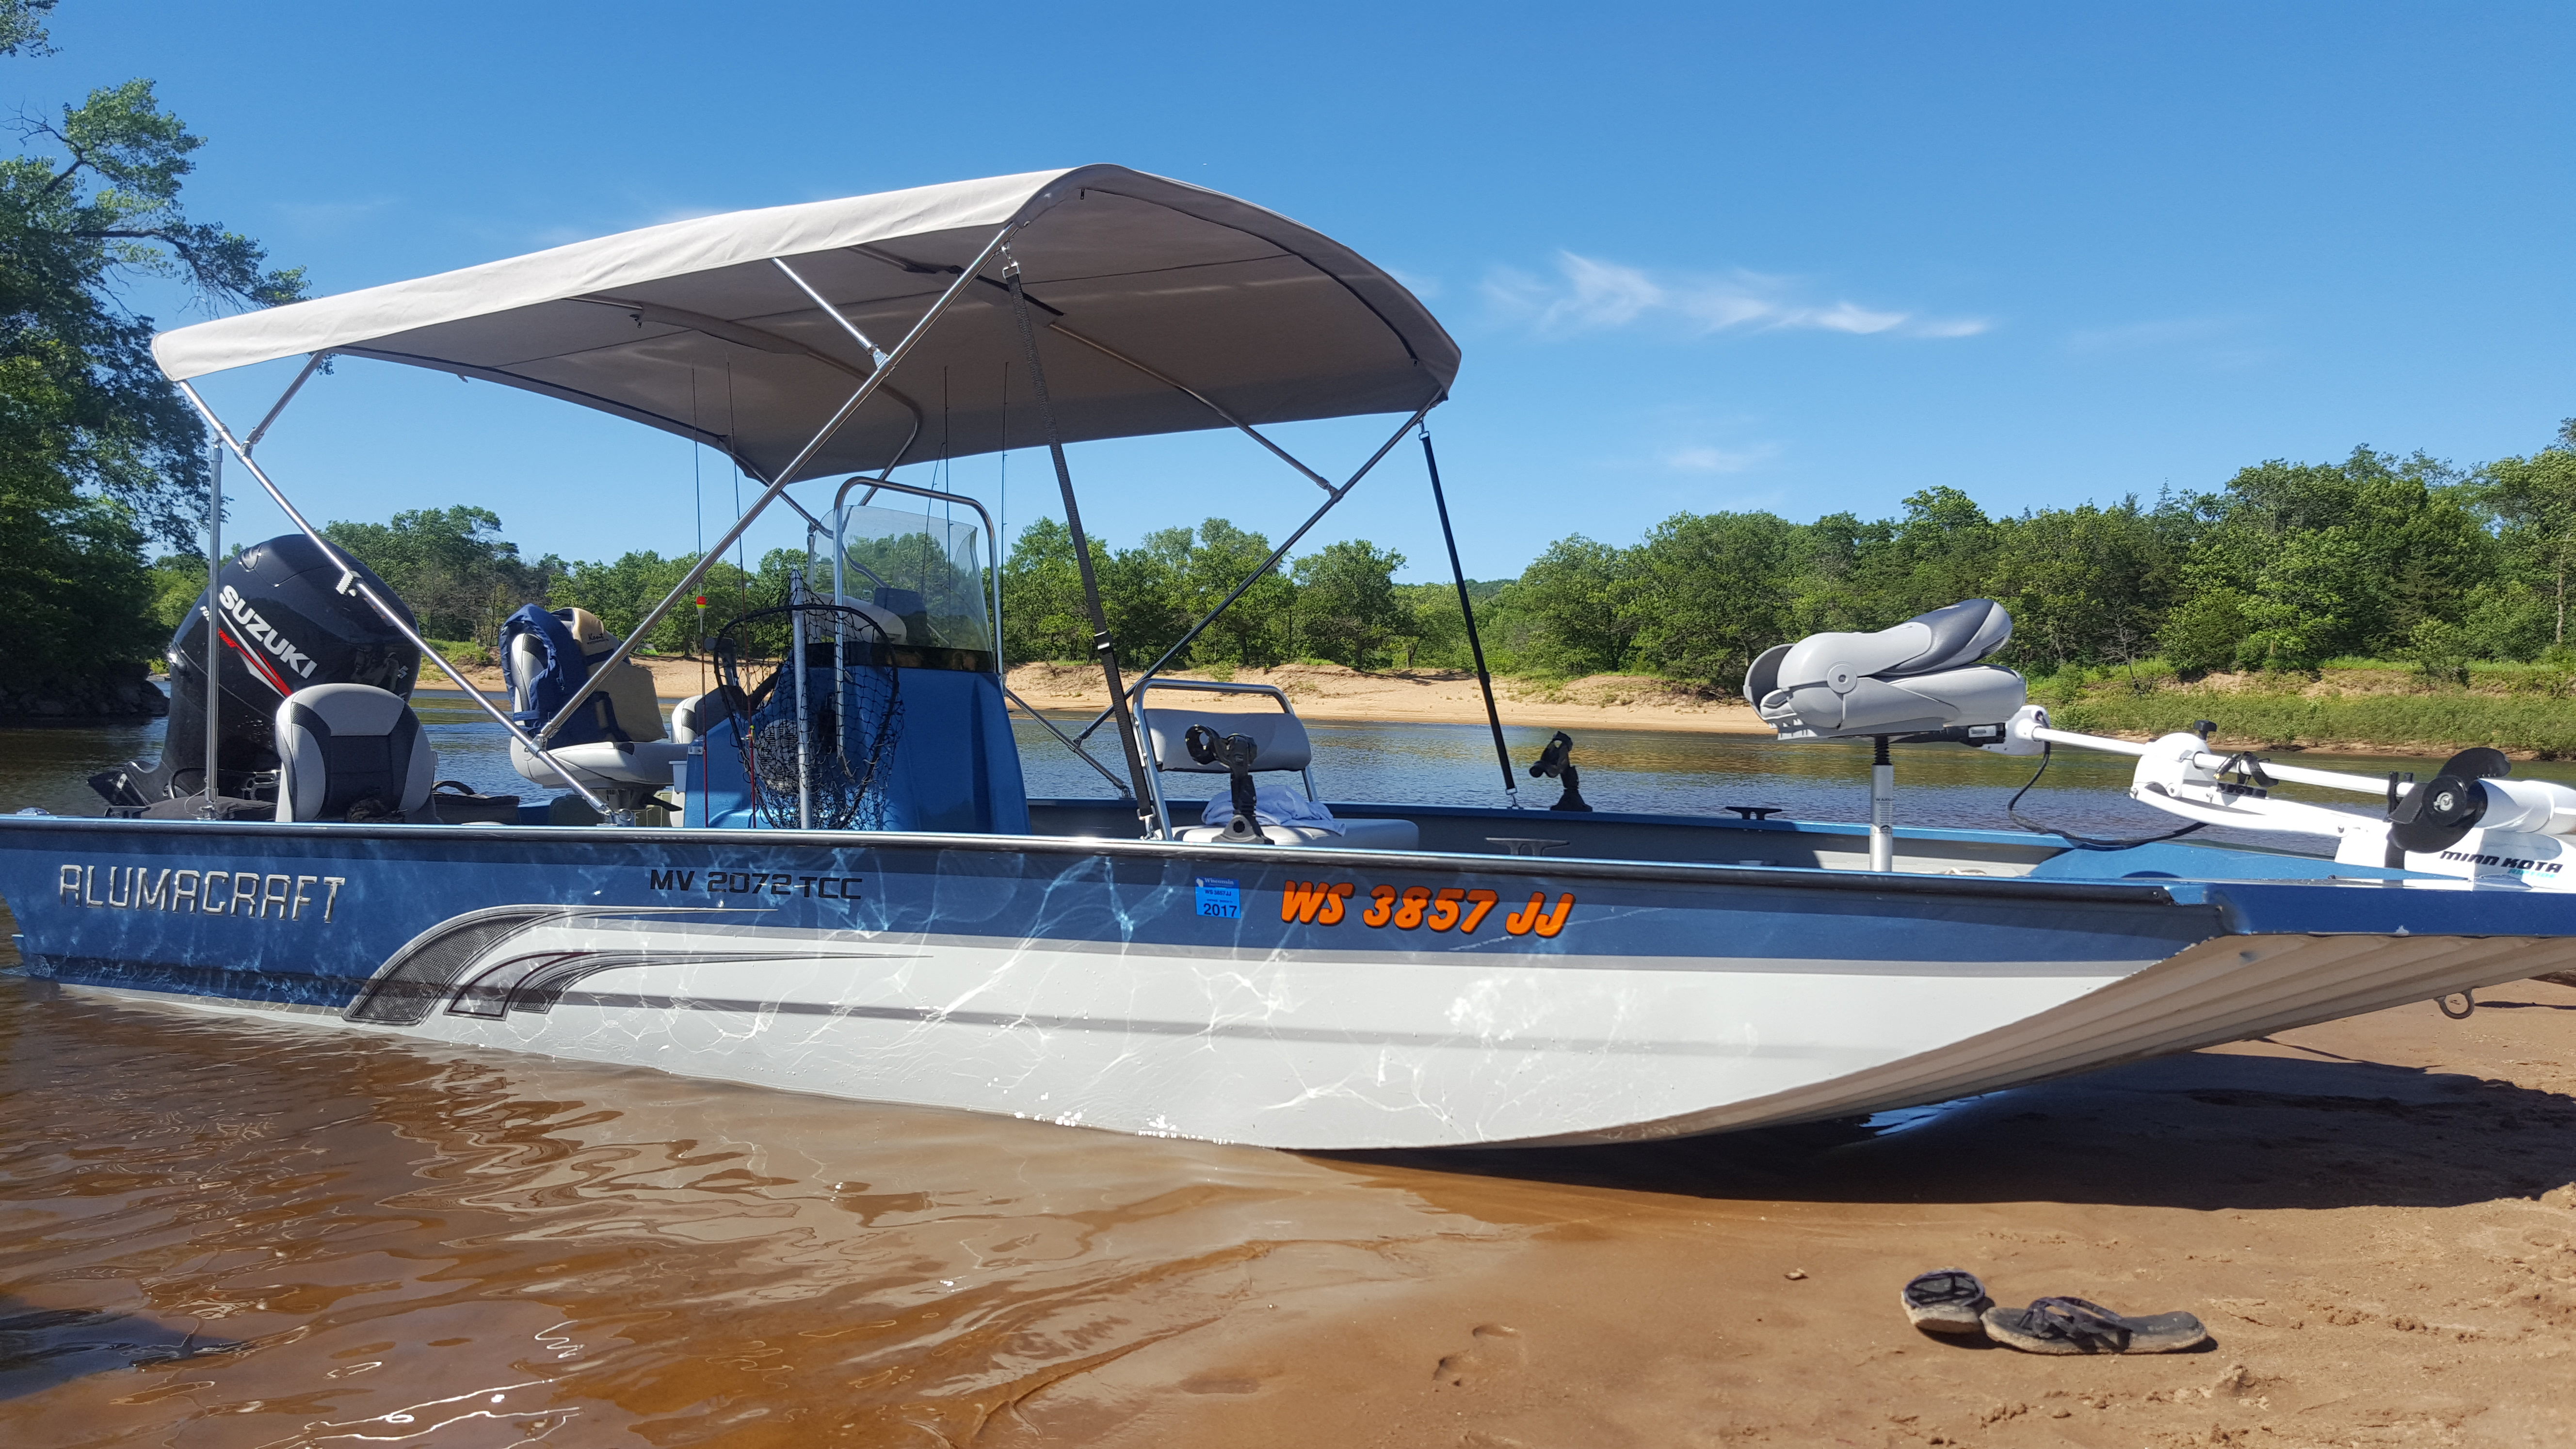 8ft Long Bimini Top with Stainless Frame